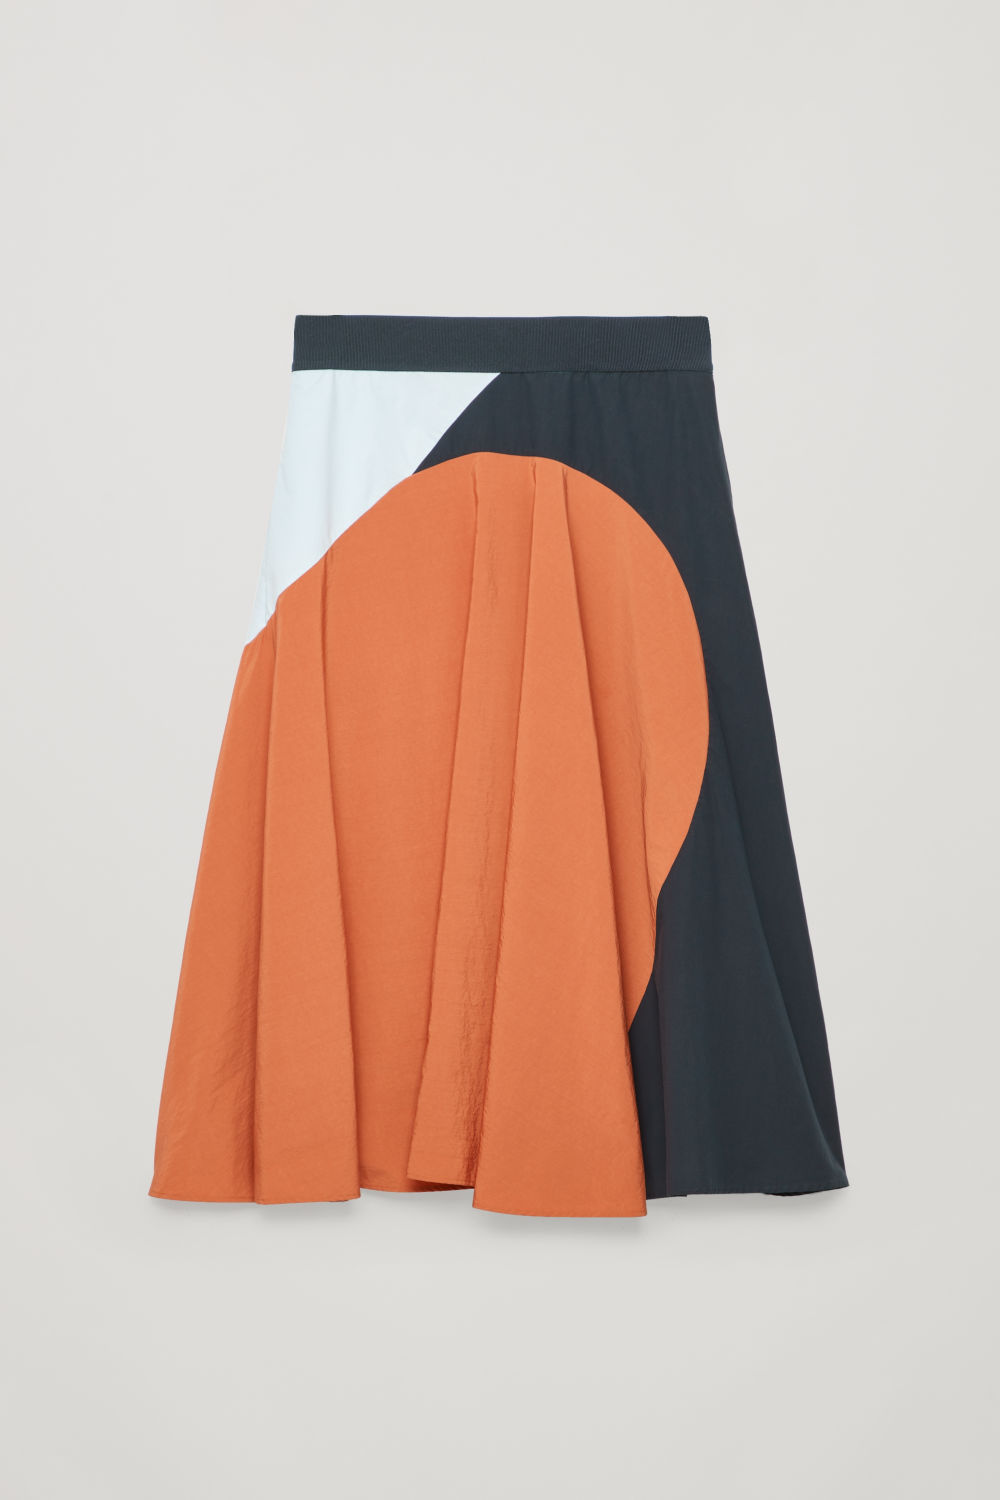 COLOUR-BLOCK A-LINE SKIRT